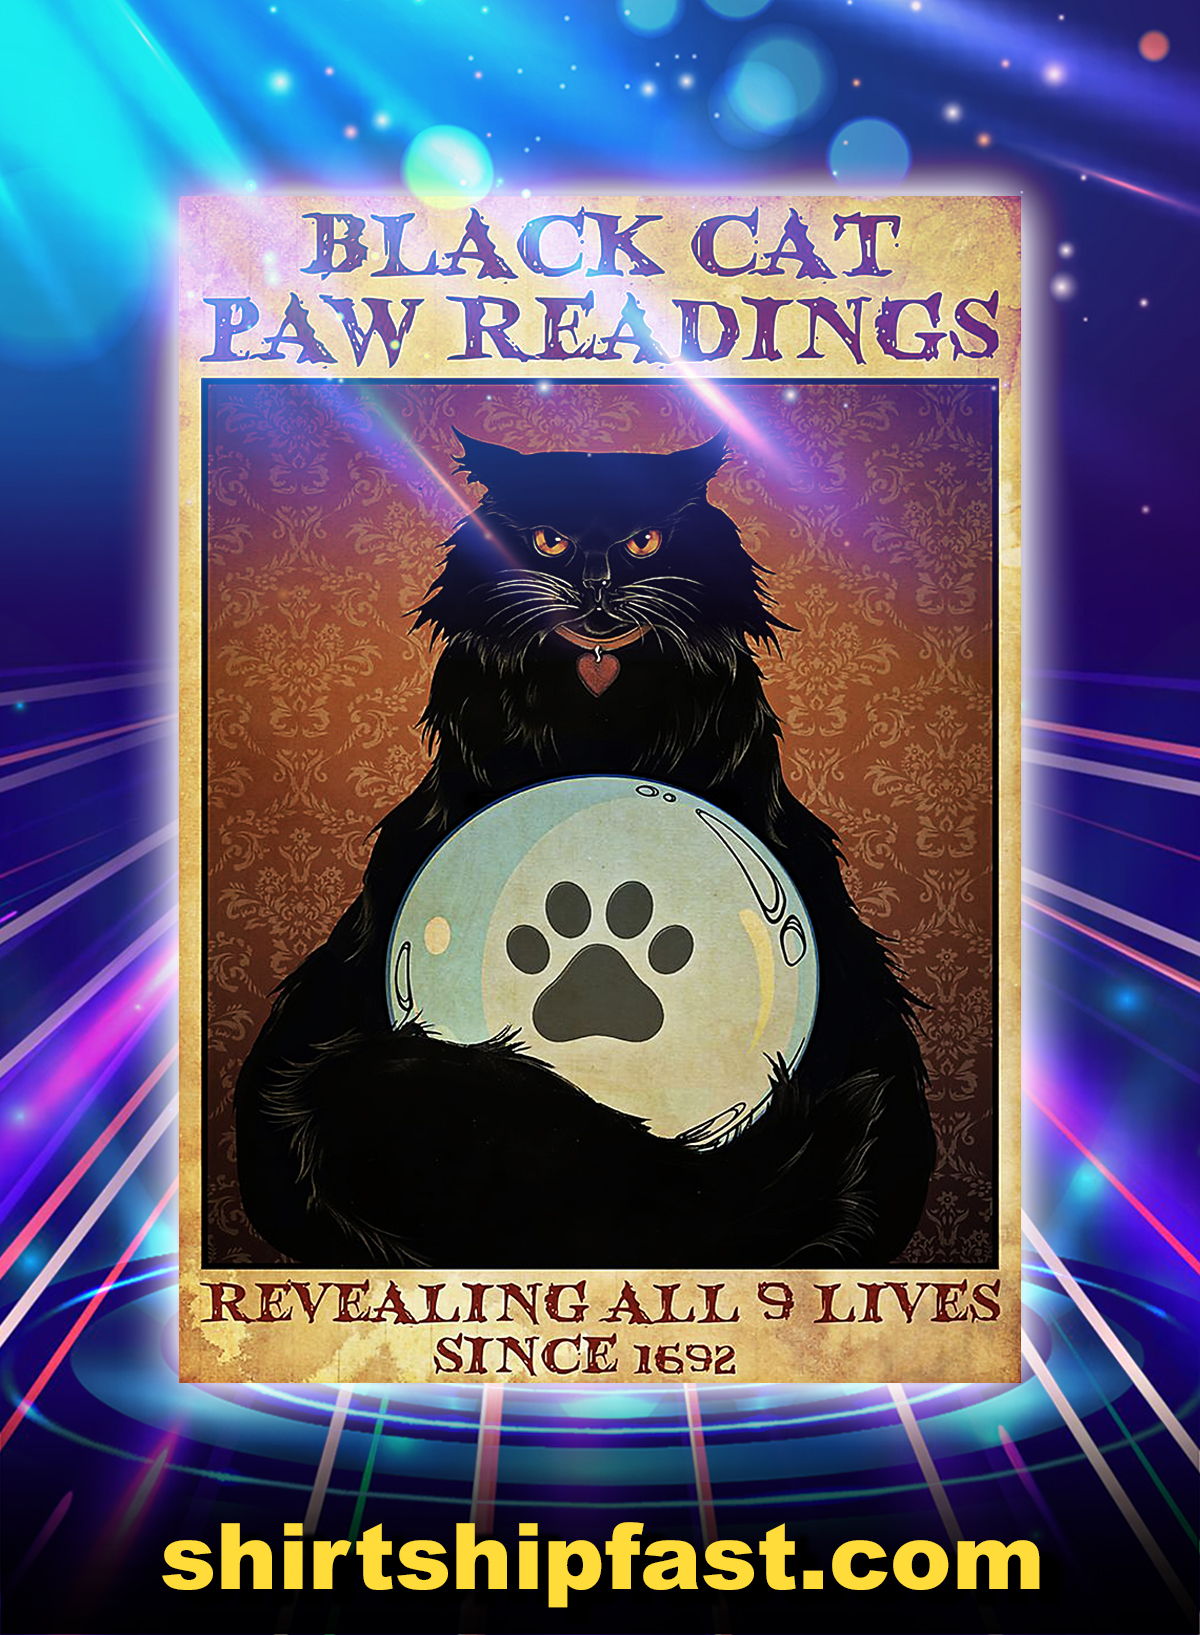 Black cat paw readings revealing all 9 lives since 1692 poster - A4